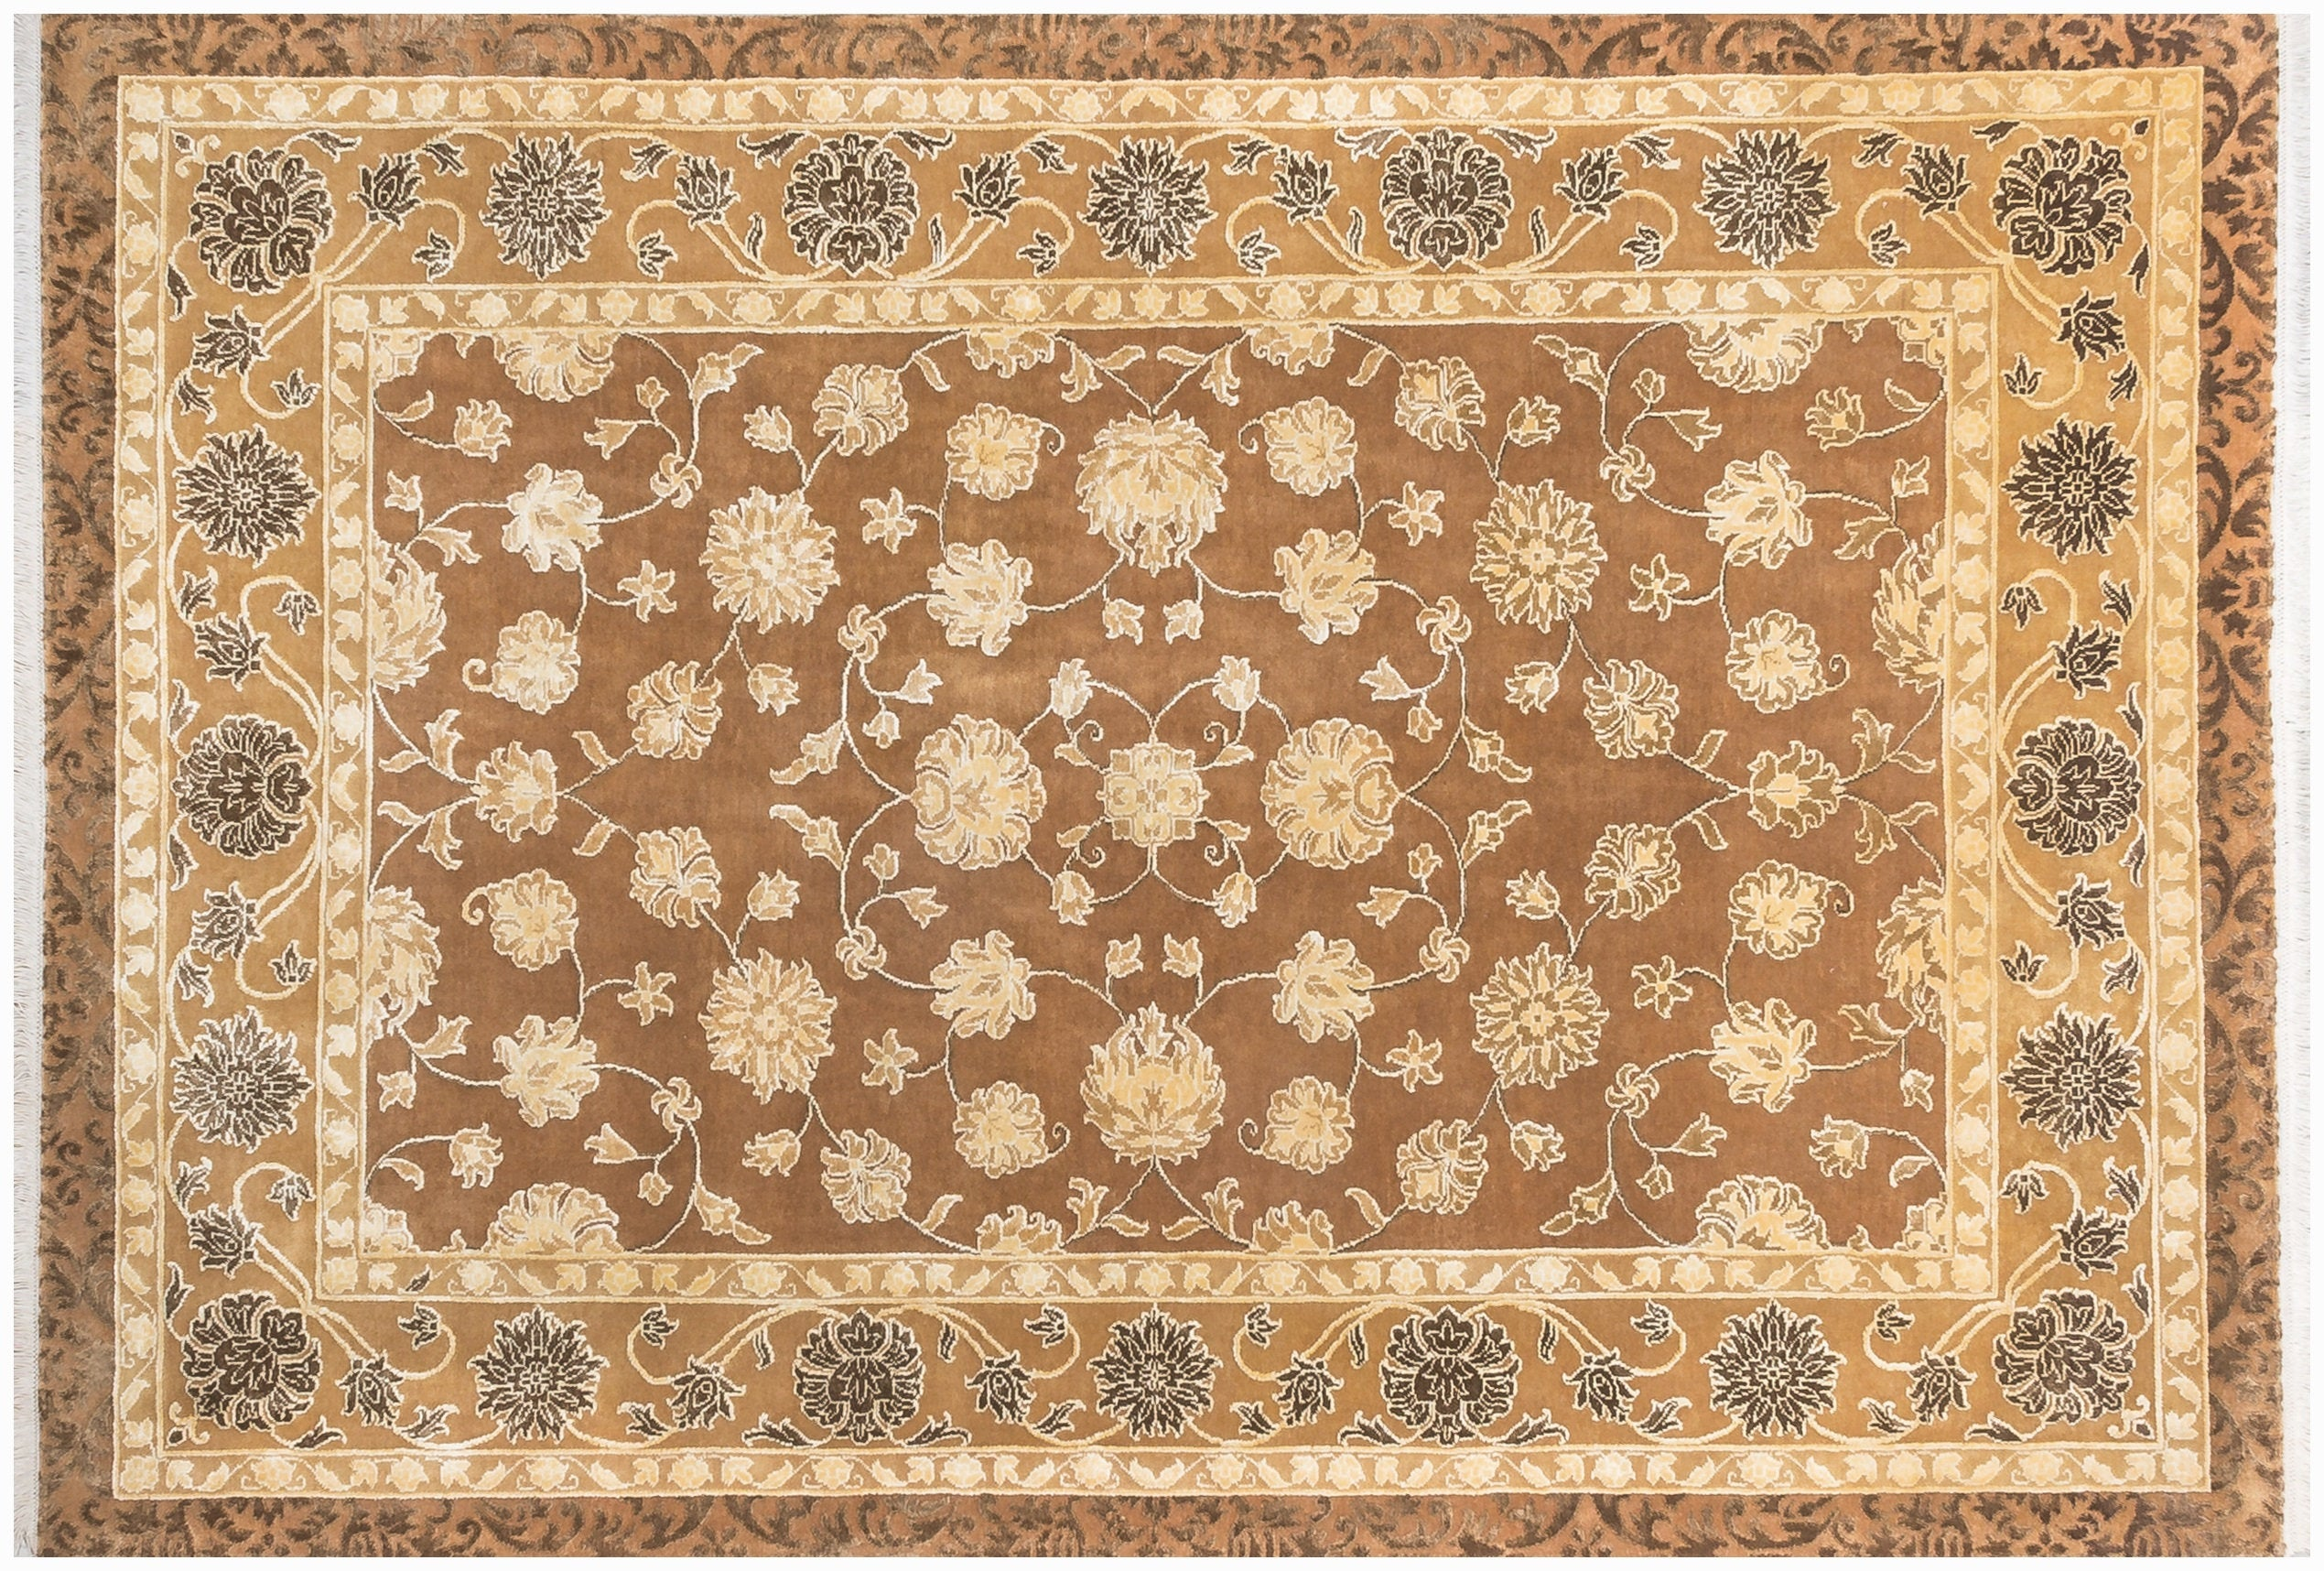 Oriental Rugs Beige Brown Geometric And Floral Traditional